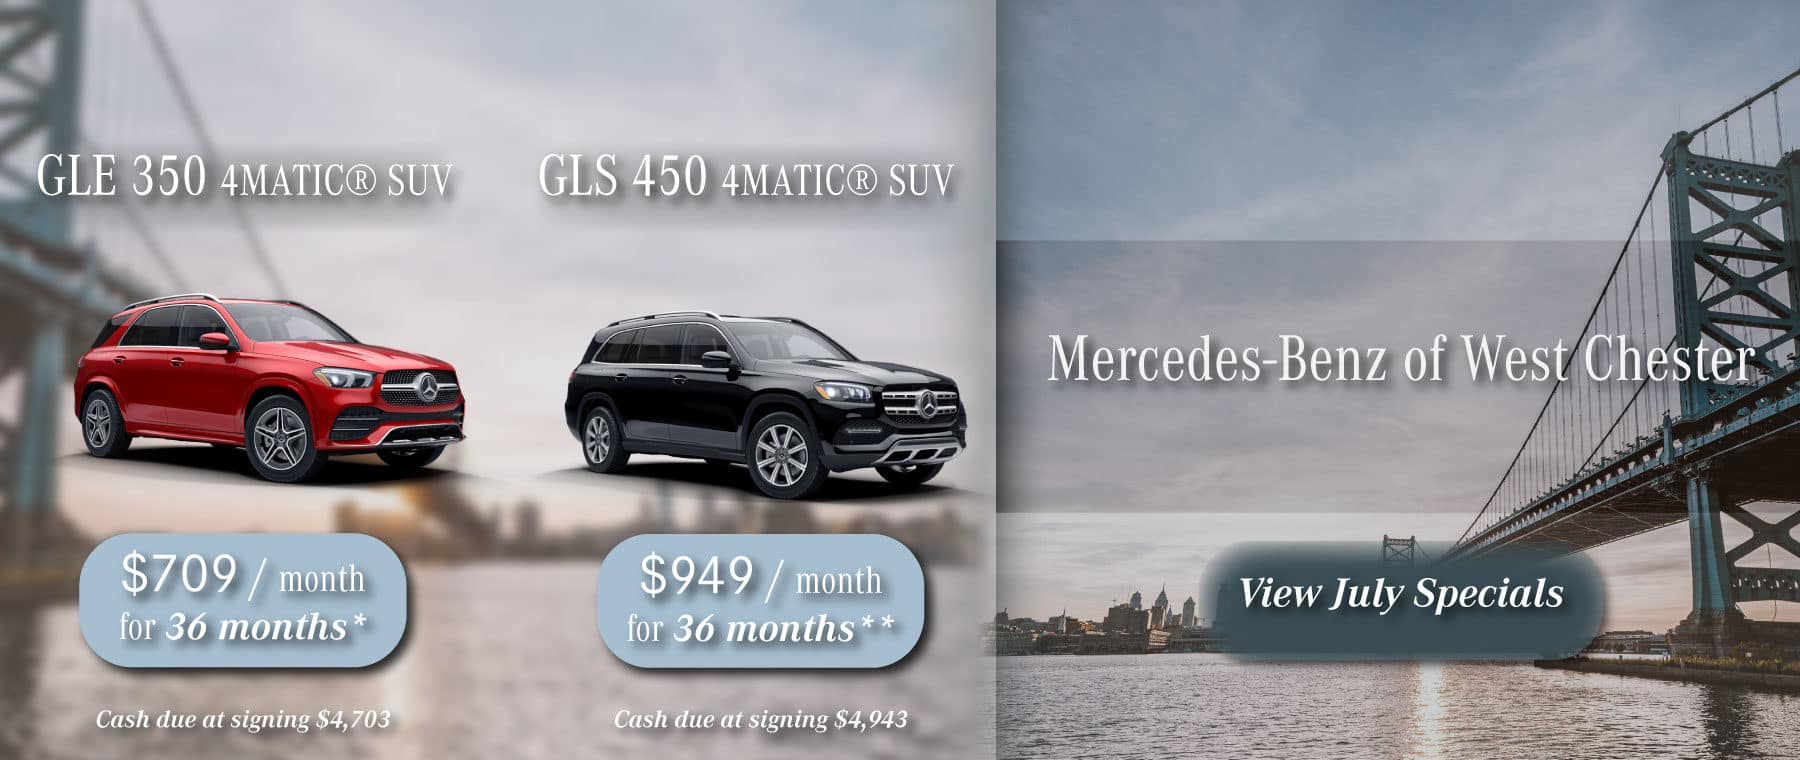 mercedes-benz of west chester new 2021 mercedes lease specials